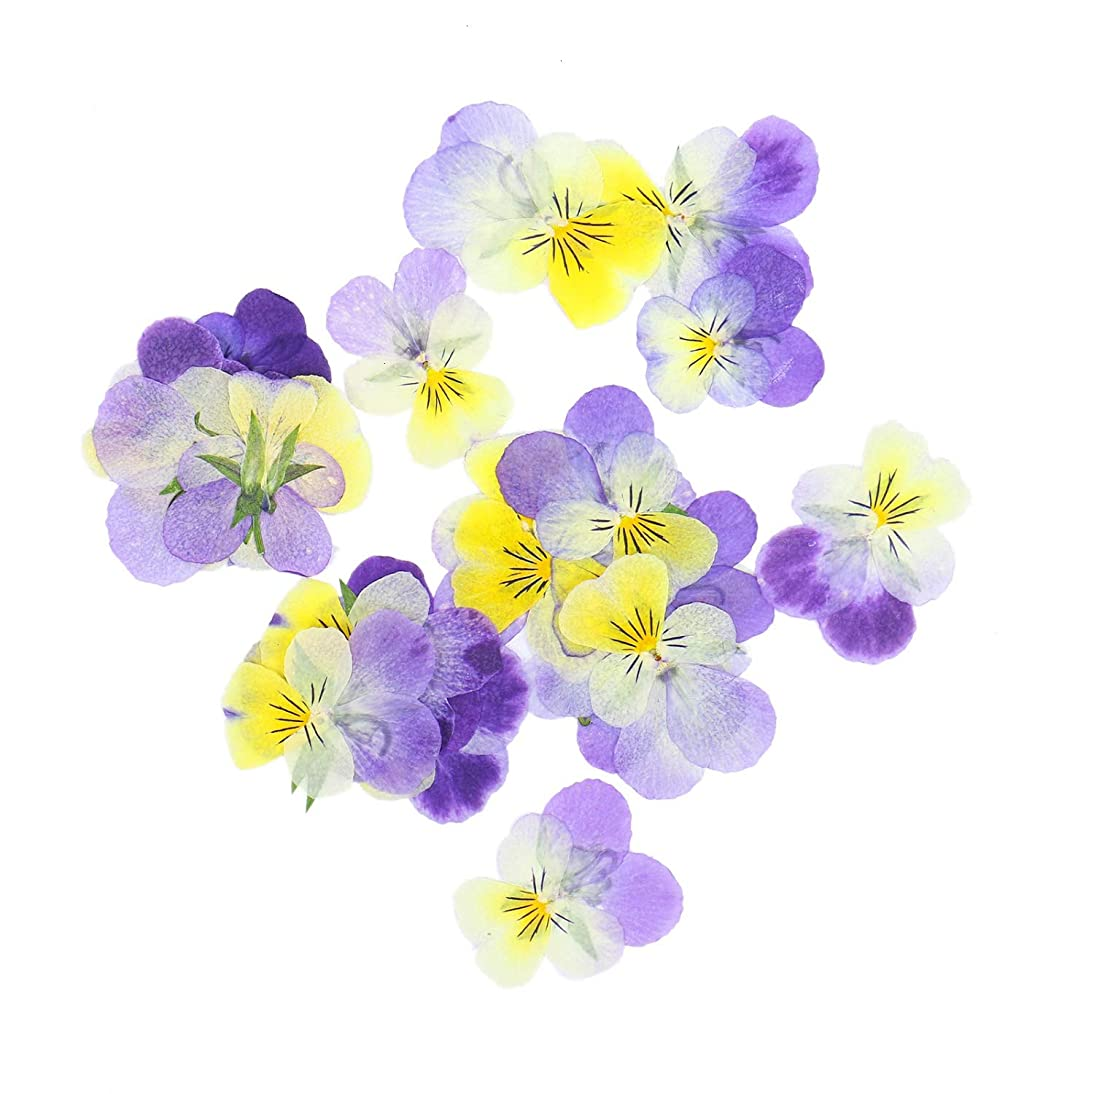 Monrocco 30Pcs Real Pansy Pressed Dried Flowers DIY Preserved Flower Decorations for Resin Jewelry Pendant Crafts DIY Cards Making